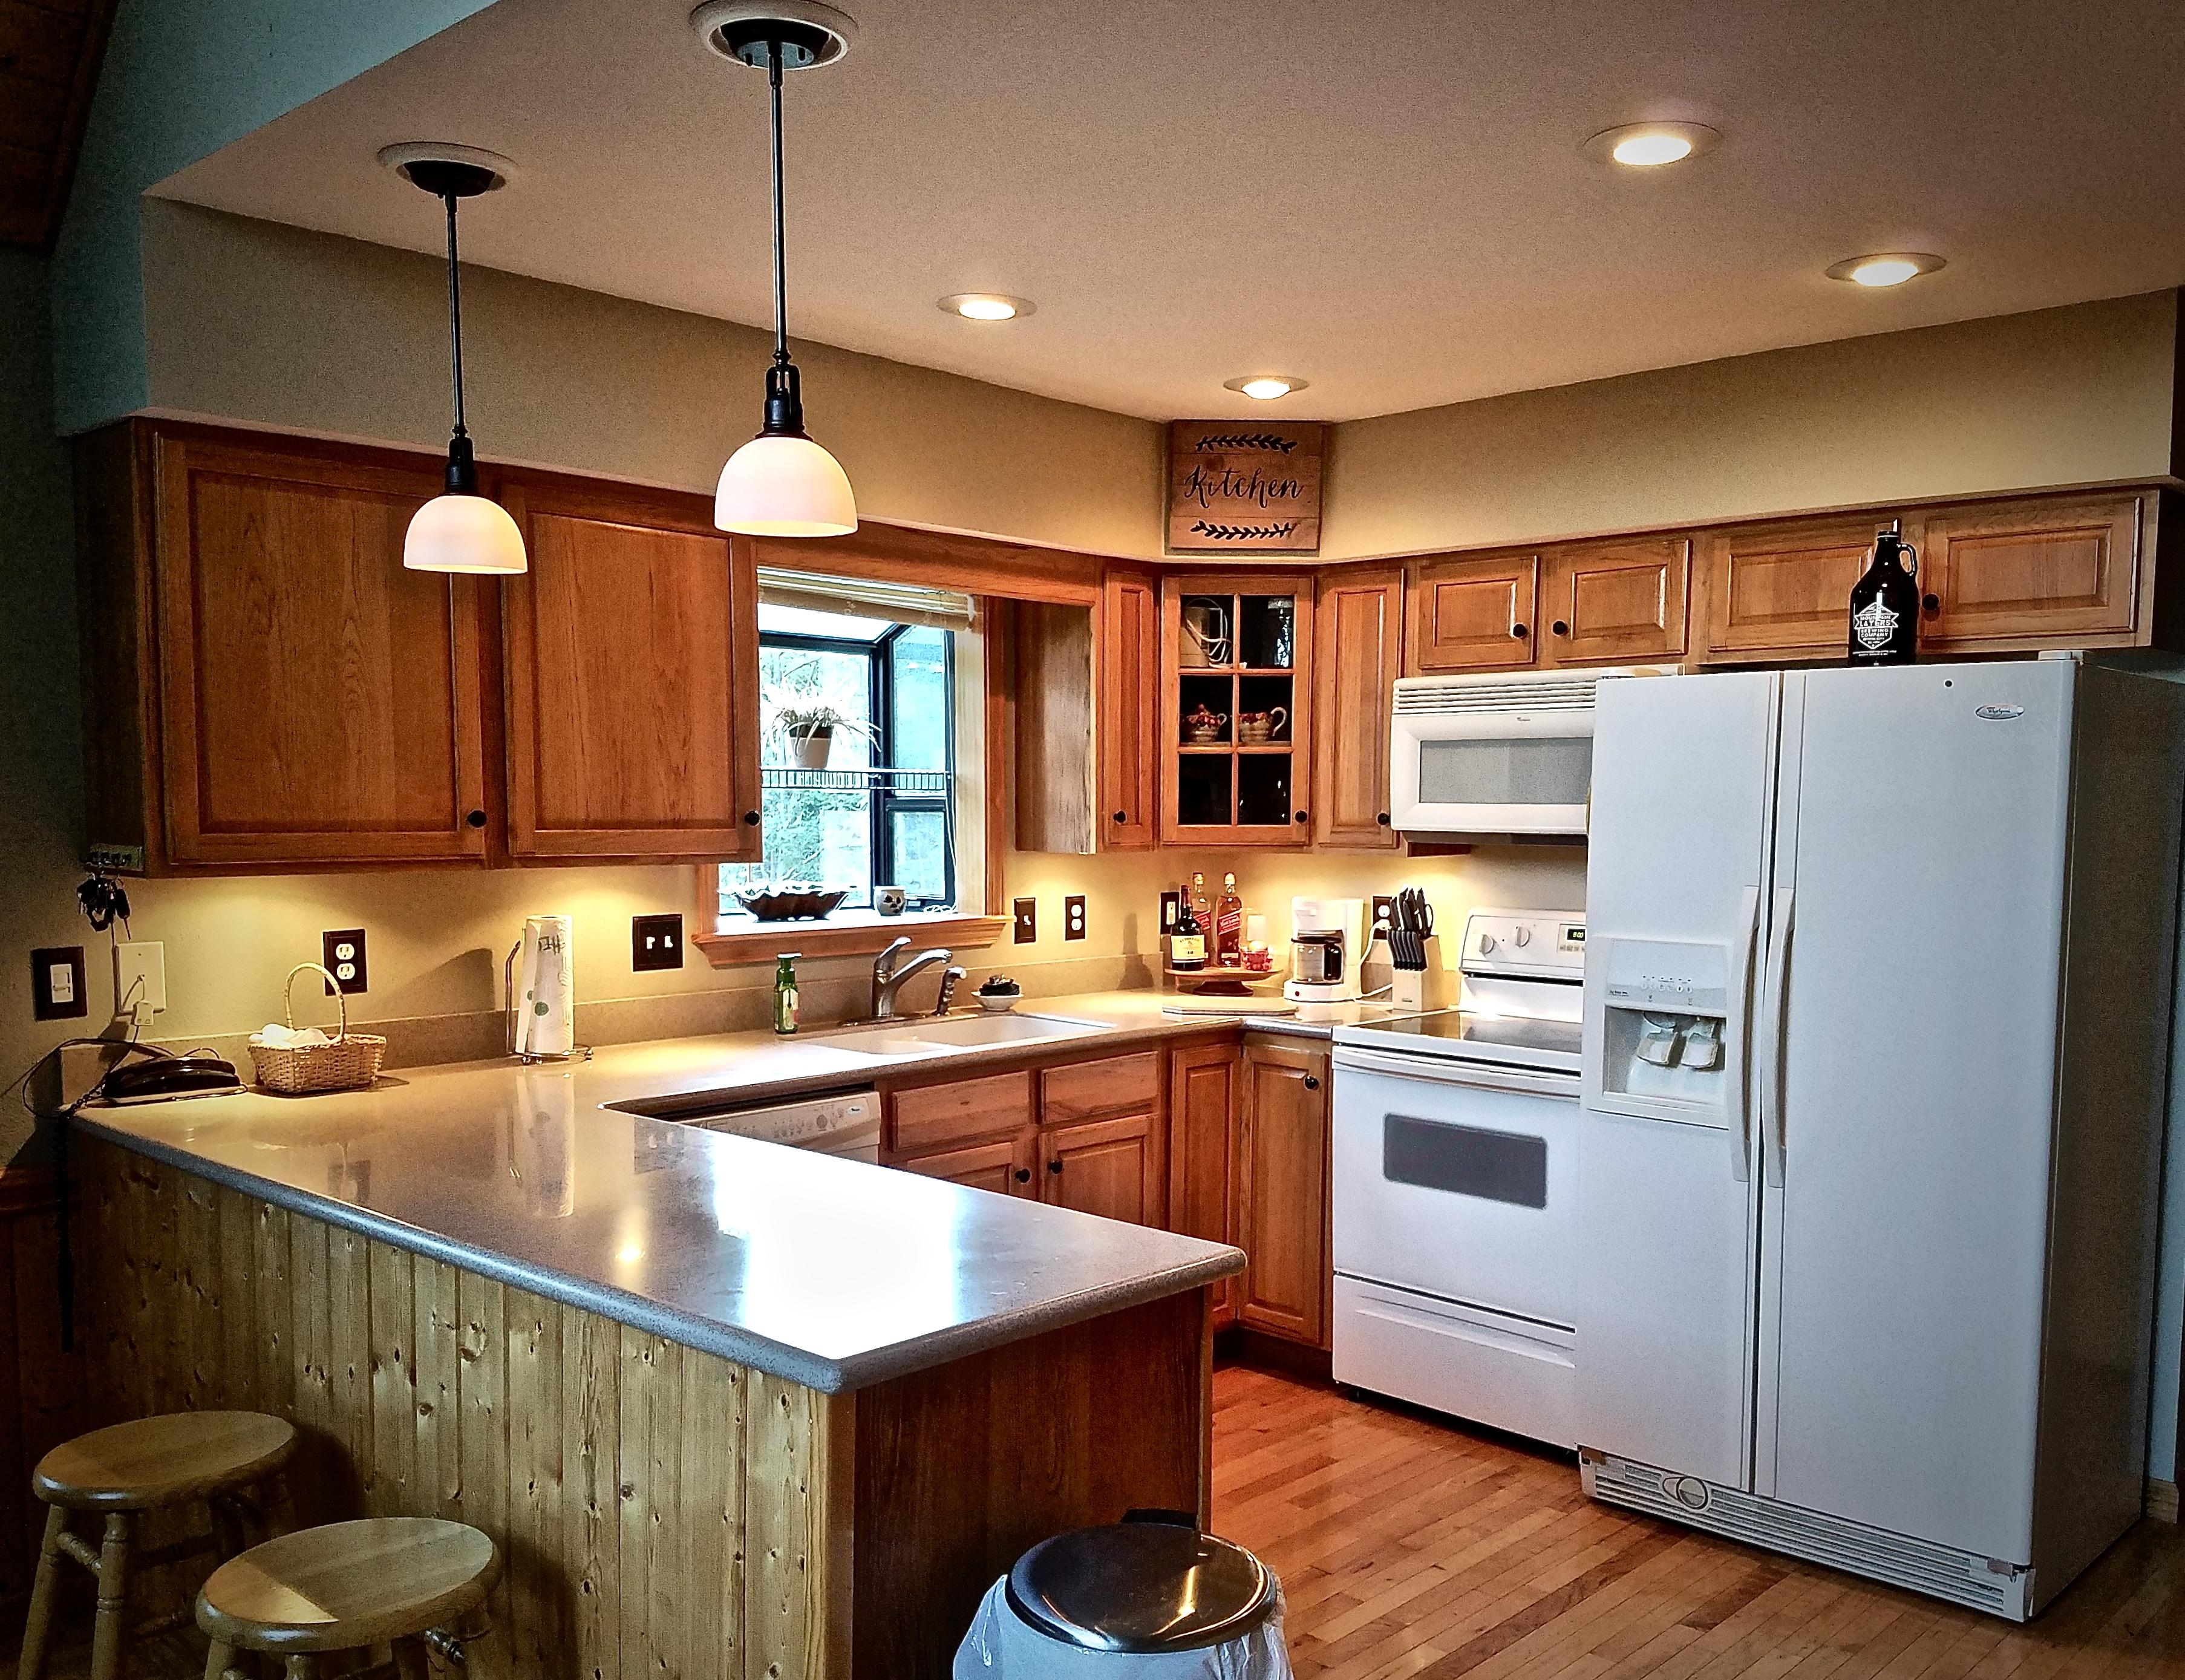 Solid surface Counter tops and a well appointed Kitchen